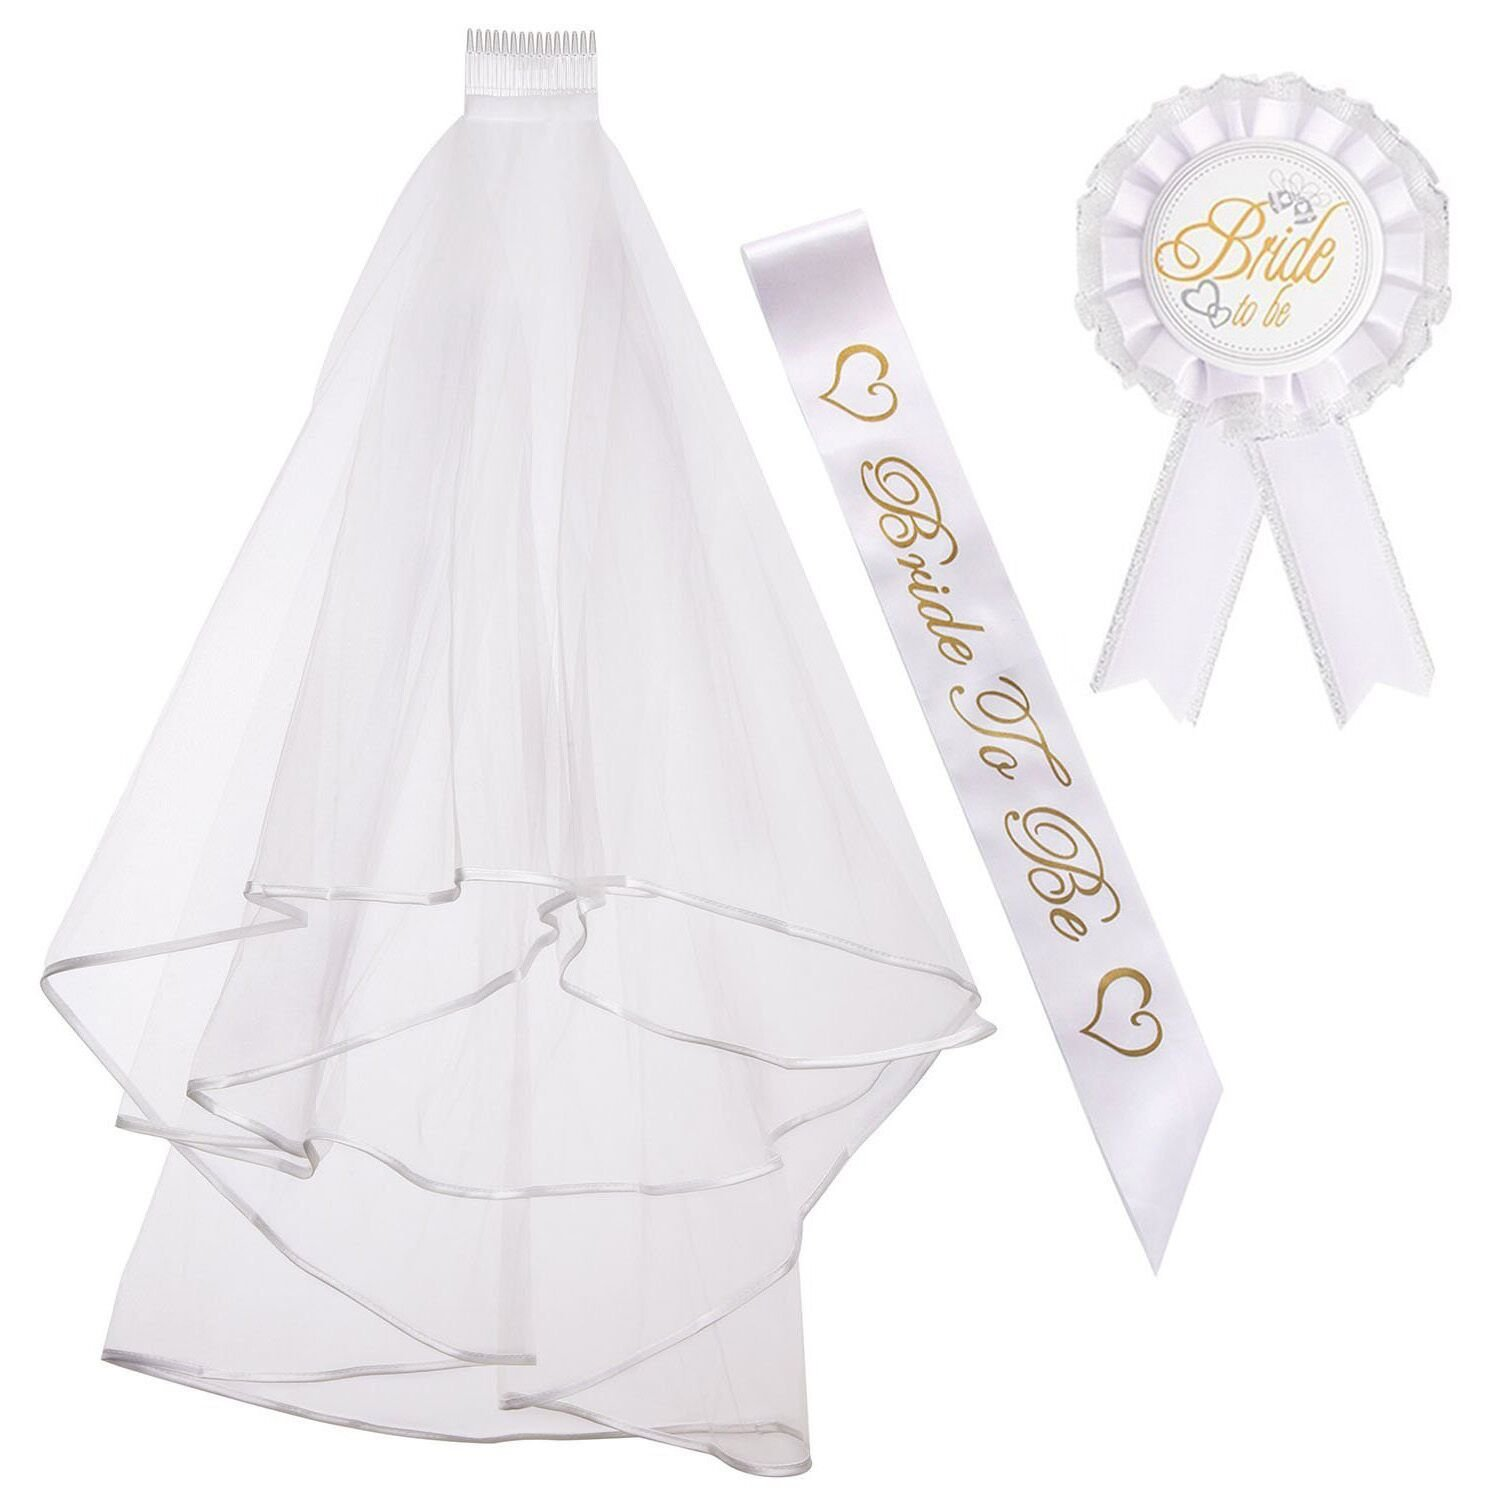 ResPai Bride To Be Sash Hen Do Night Out Bachelorette Party Accessories White Wedding Veil with Comb Satin Sash Bridal Badges Bridal Shower Decorations Set, 3 in 1